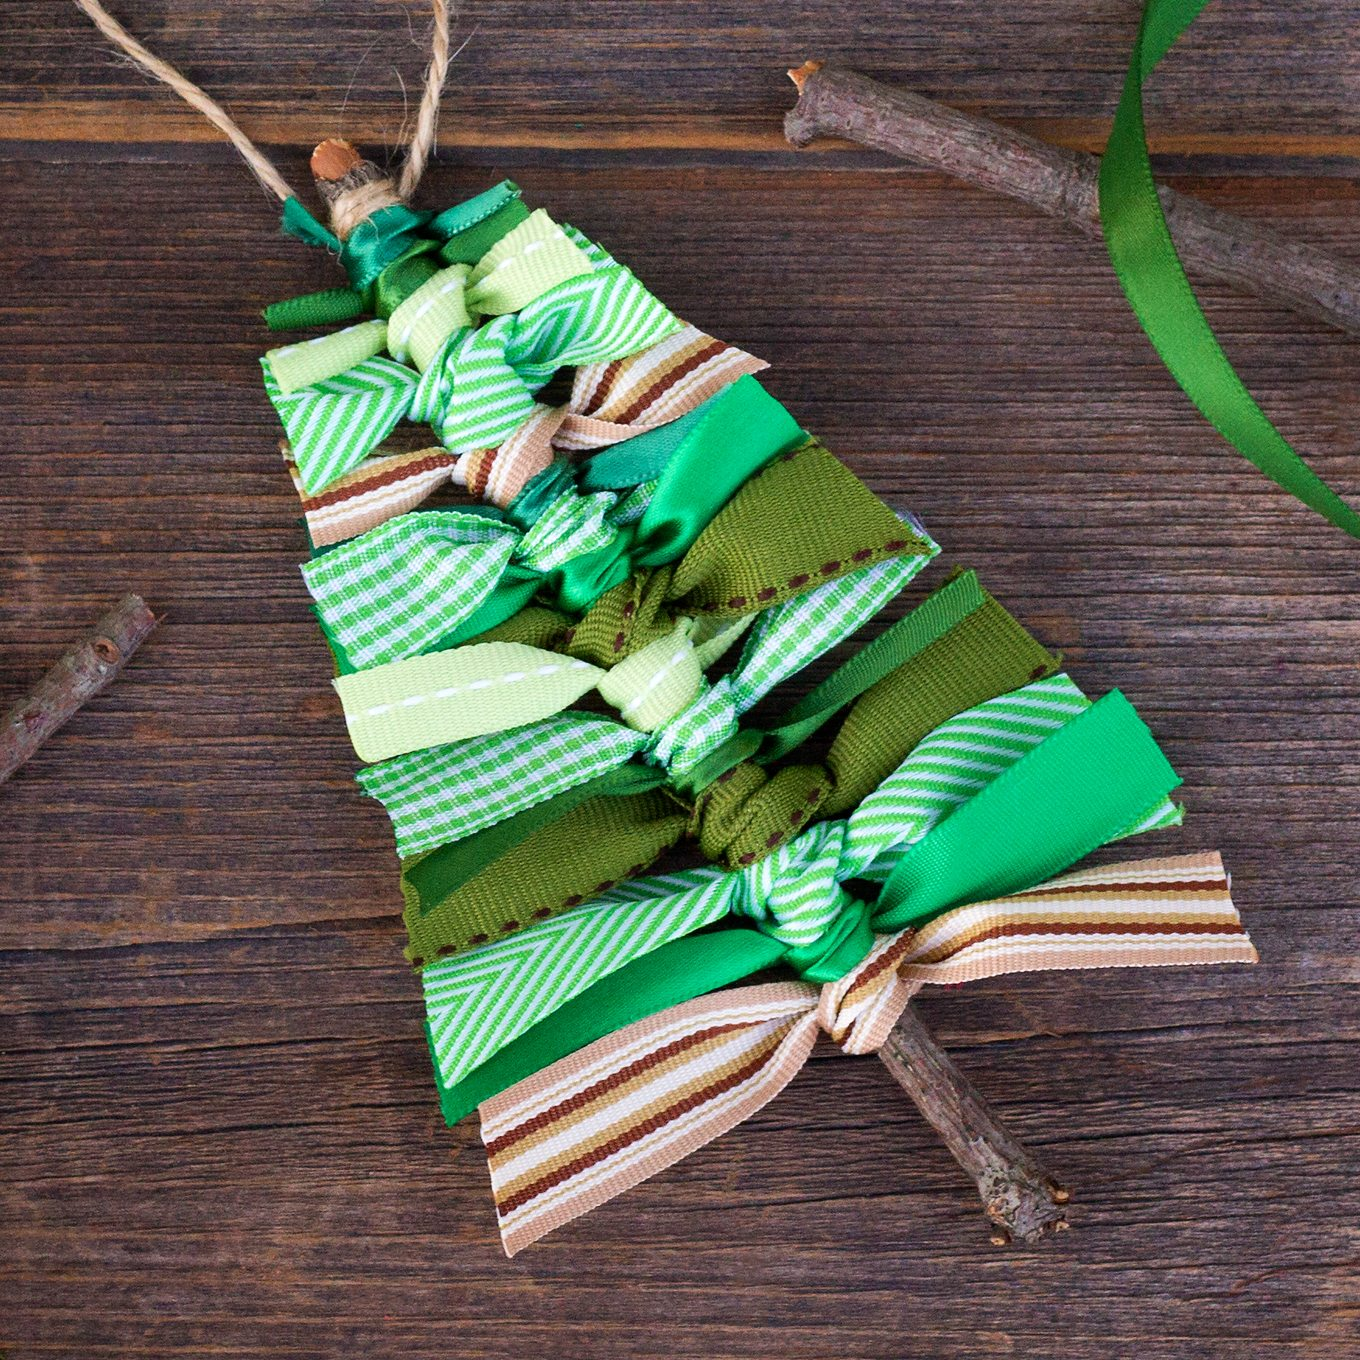 How to Make Scrap Ribbon Tree Ornaments